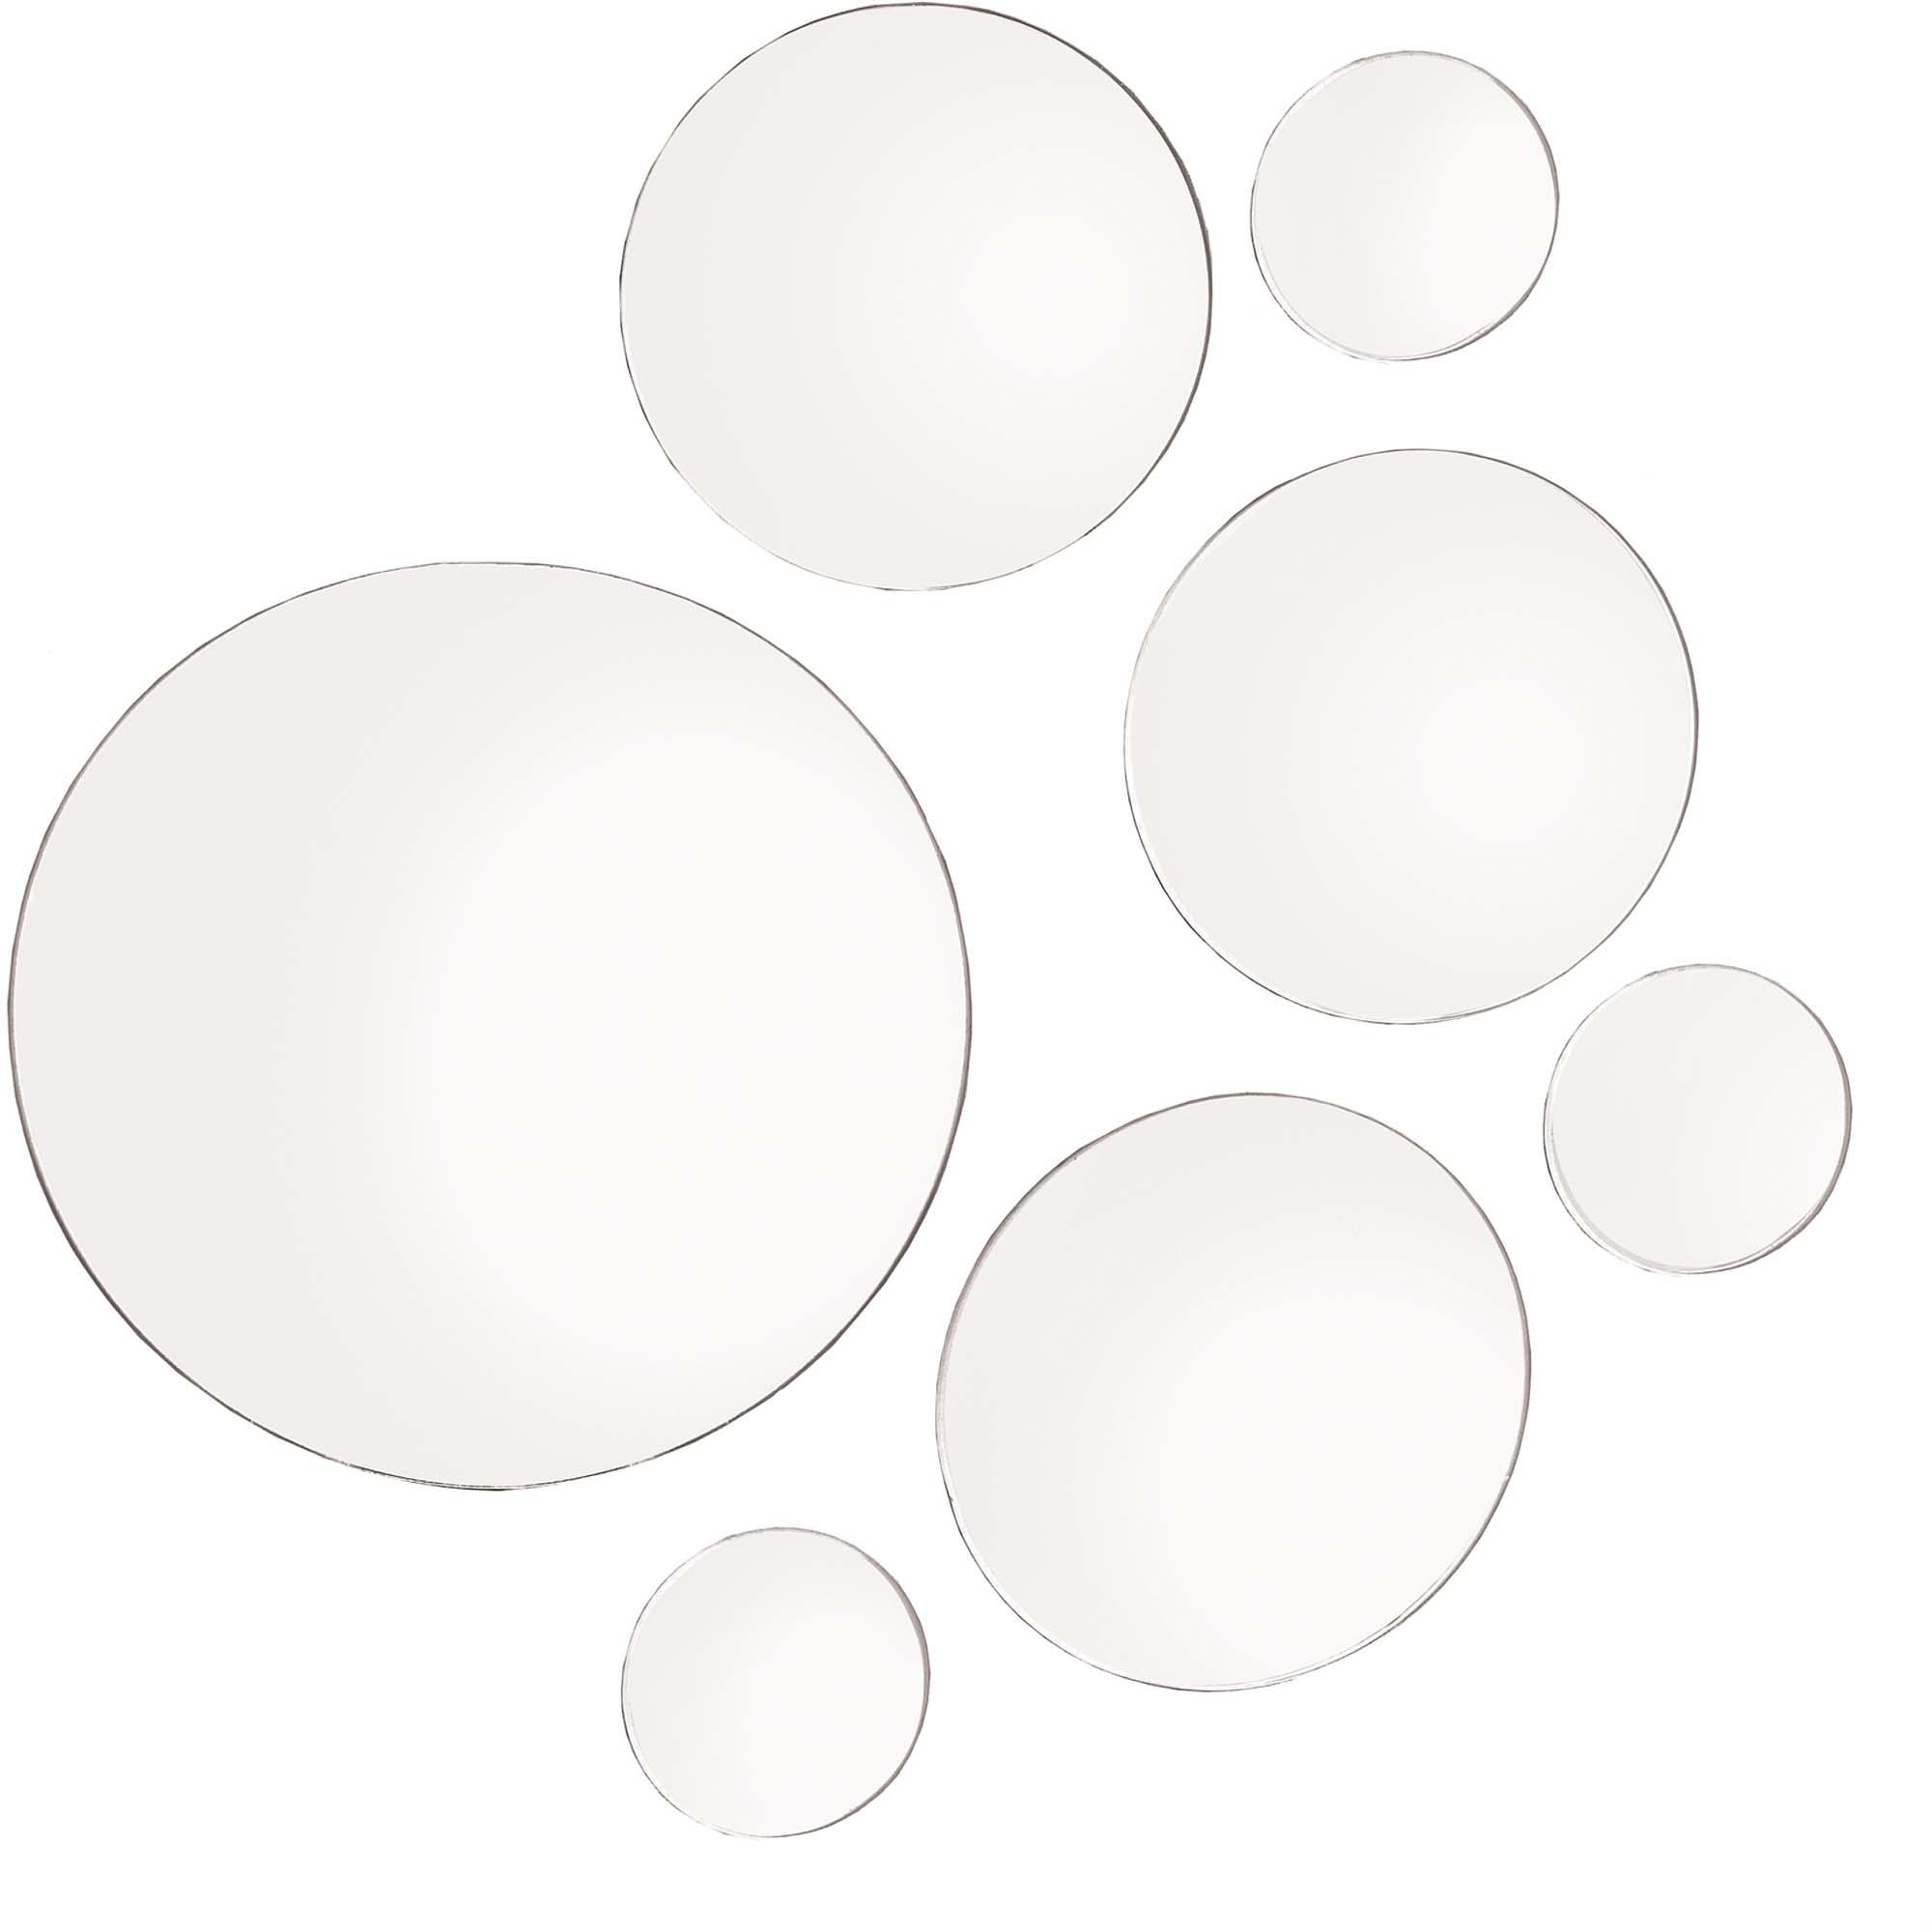 Elements Set Of 7 Round Mirrors, 9 Inch , 6 Inch And 3 Inch Within Round Mirrors (Image 6 of 20)